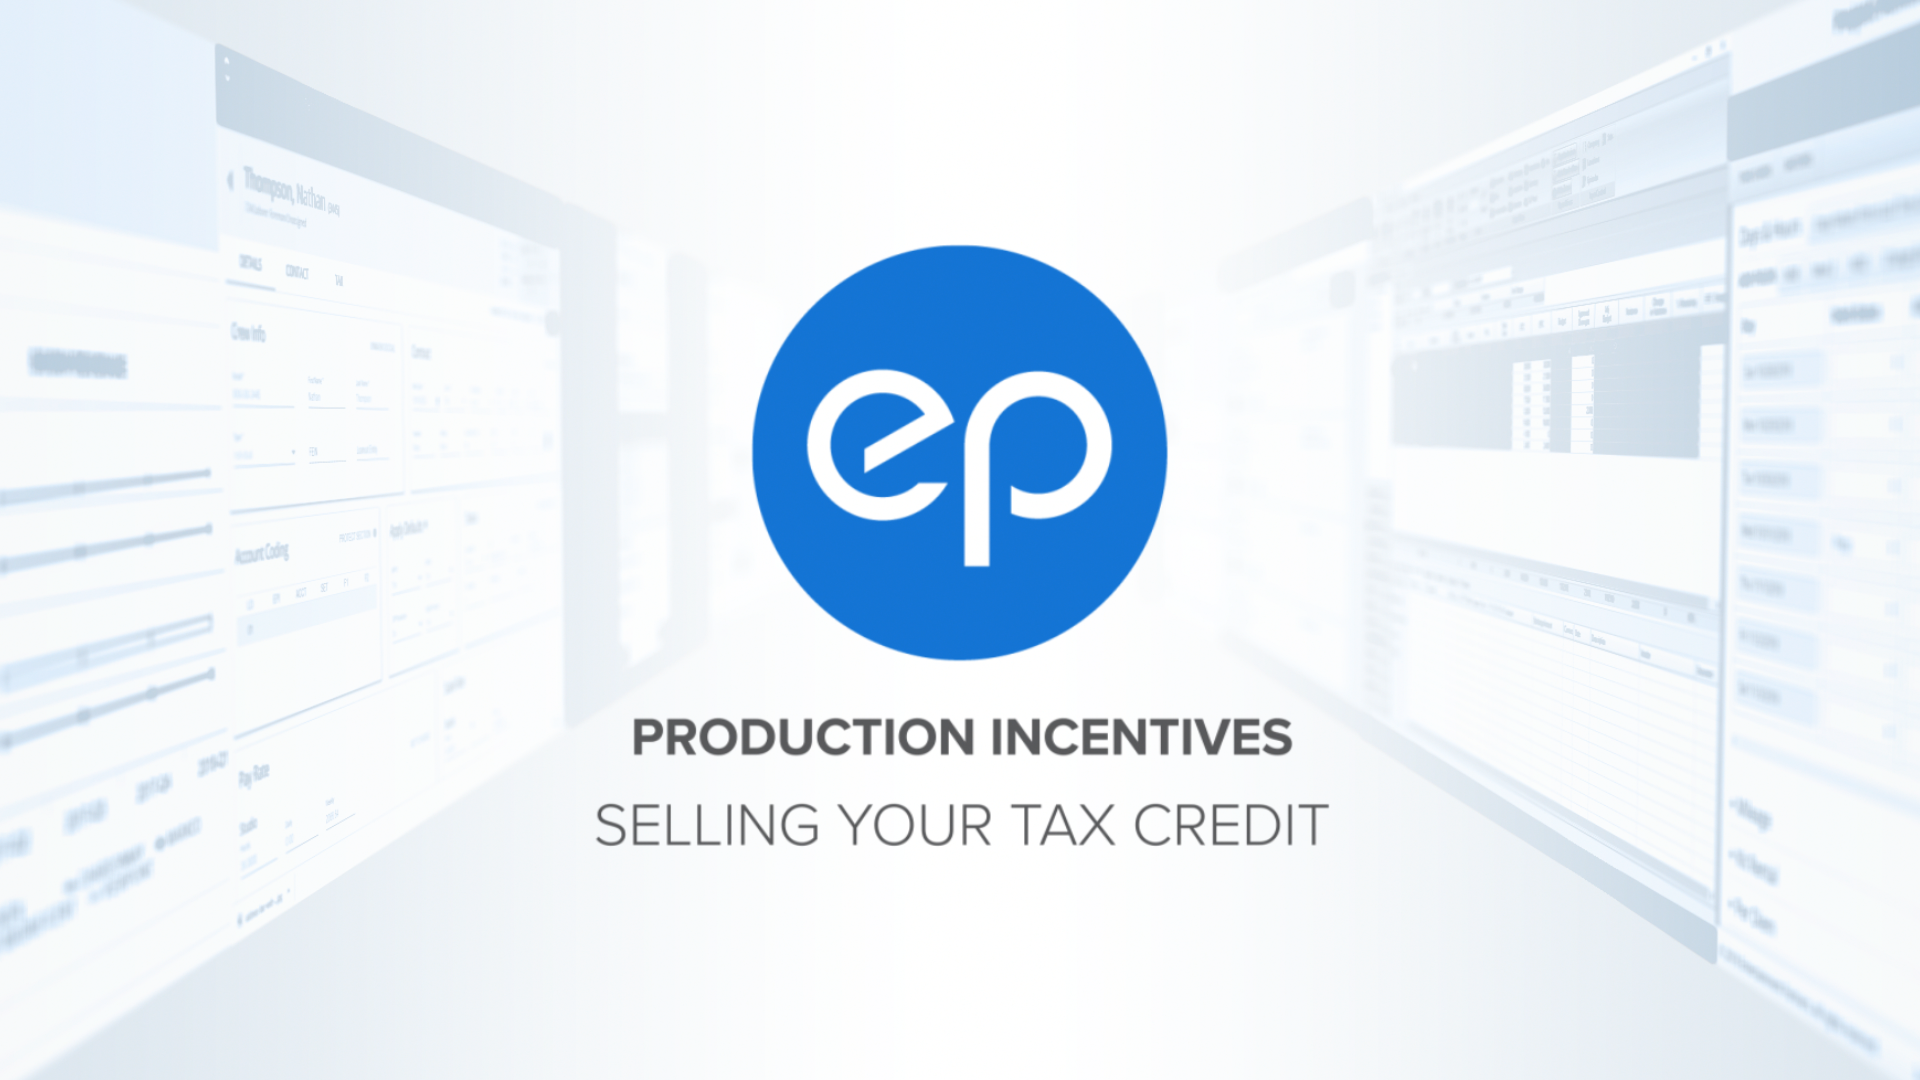 Selling Your Production Incentive Tax Credit